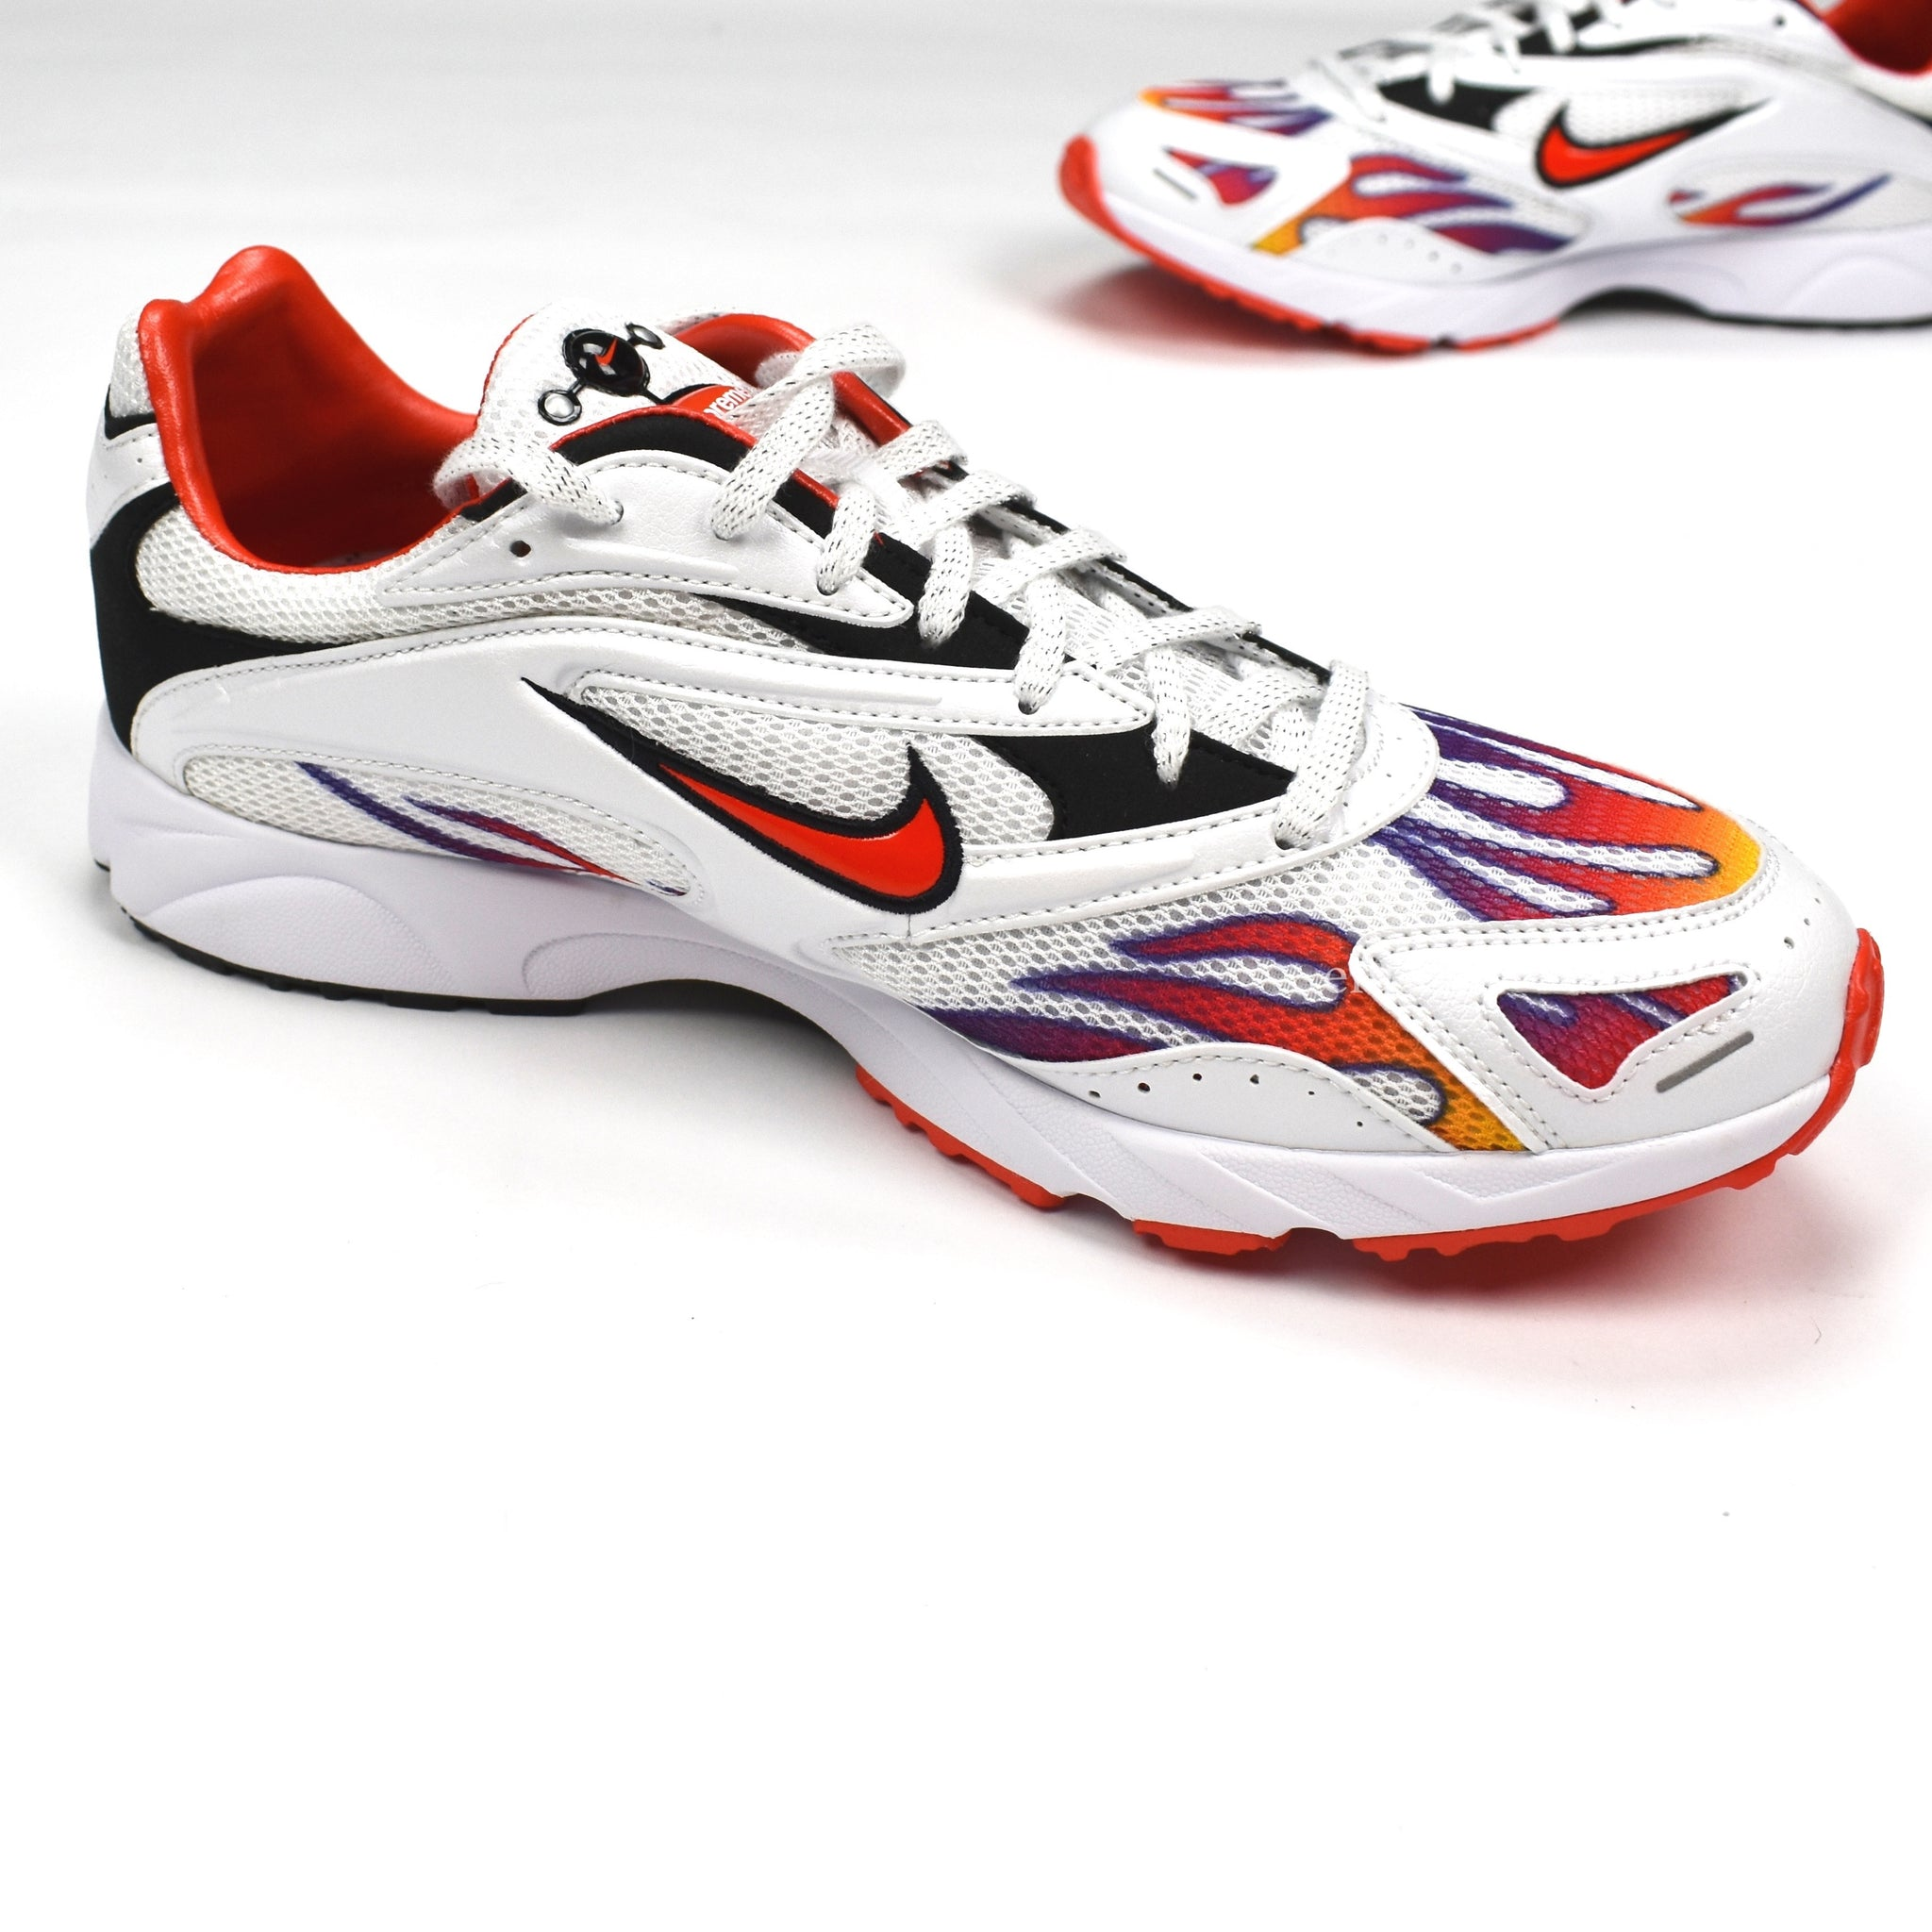 ca5bdcbea7547 Supreme x Nike - Men s Zoom Streak Spectrum Plus Sneakers (White ...